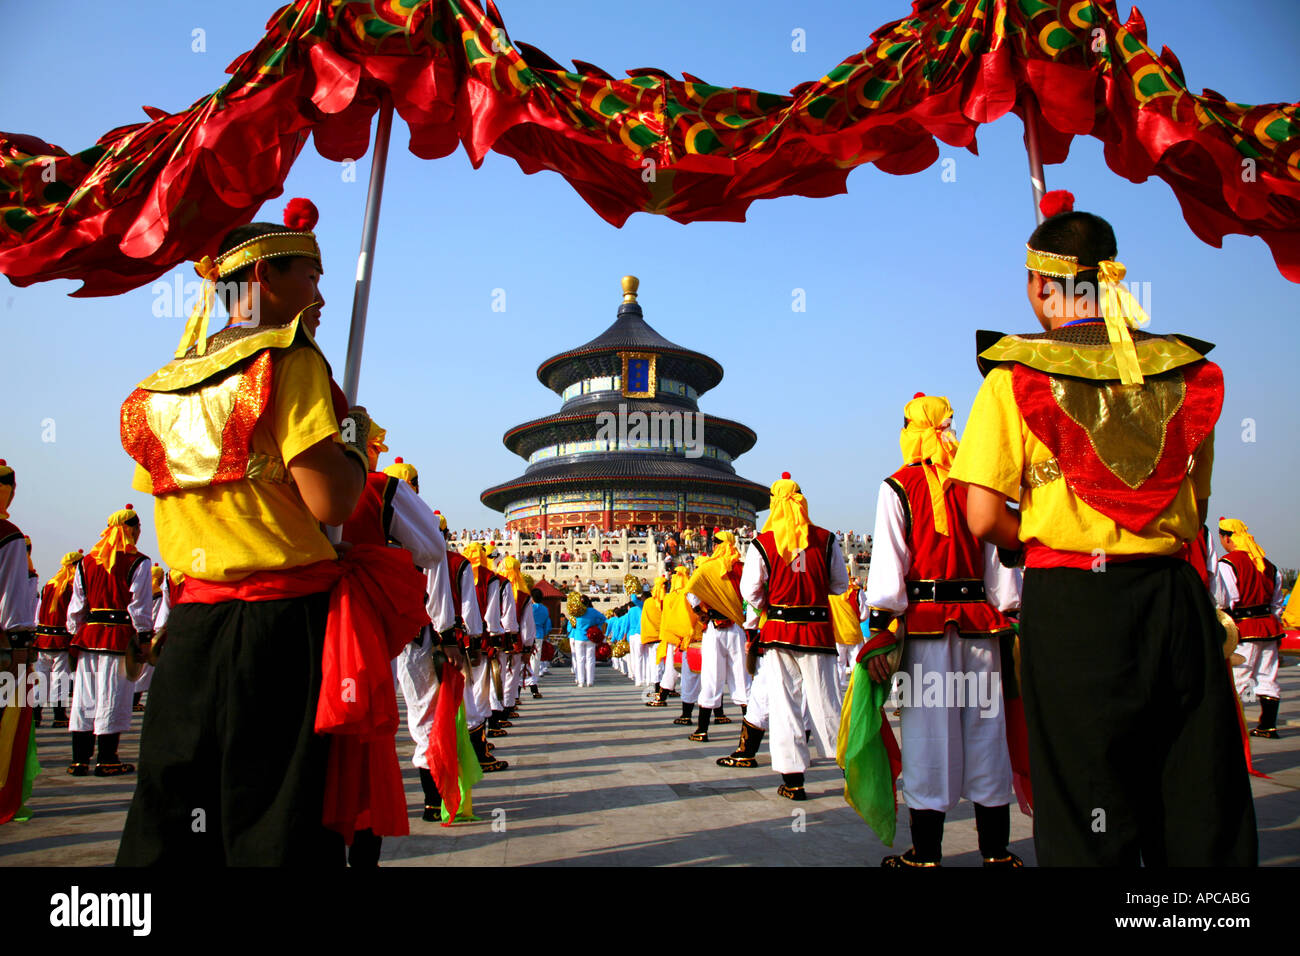 Temple of Heaven 'Prayer for Good Harvest' Hall, World Heritage Site, with costumed dragon dancers on forecourt. - Stock Image